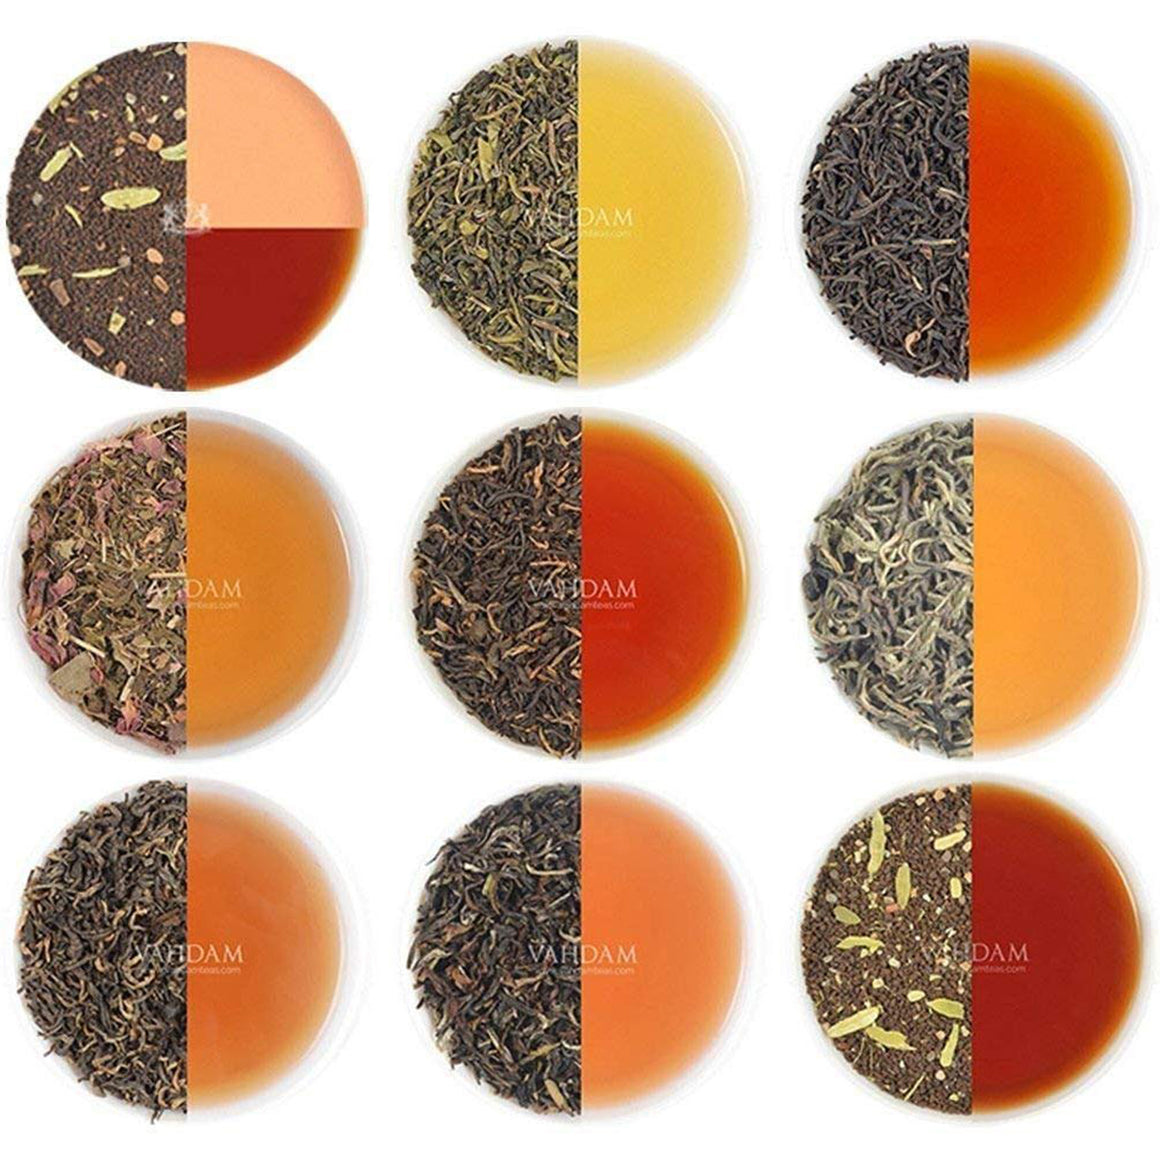 Assorted Loose Leaf - 10 Teas Sampler (50 Cups)